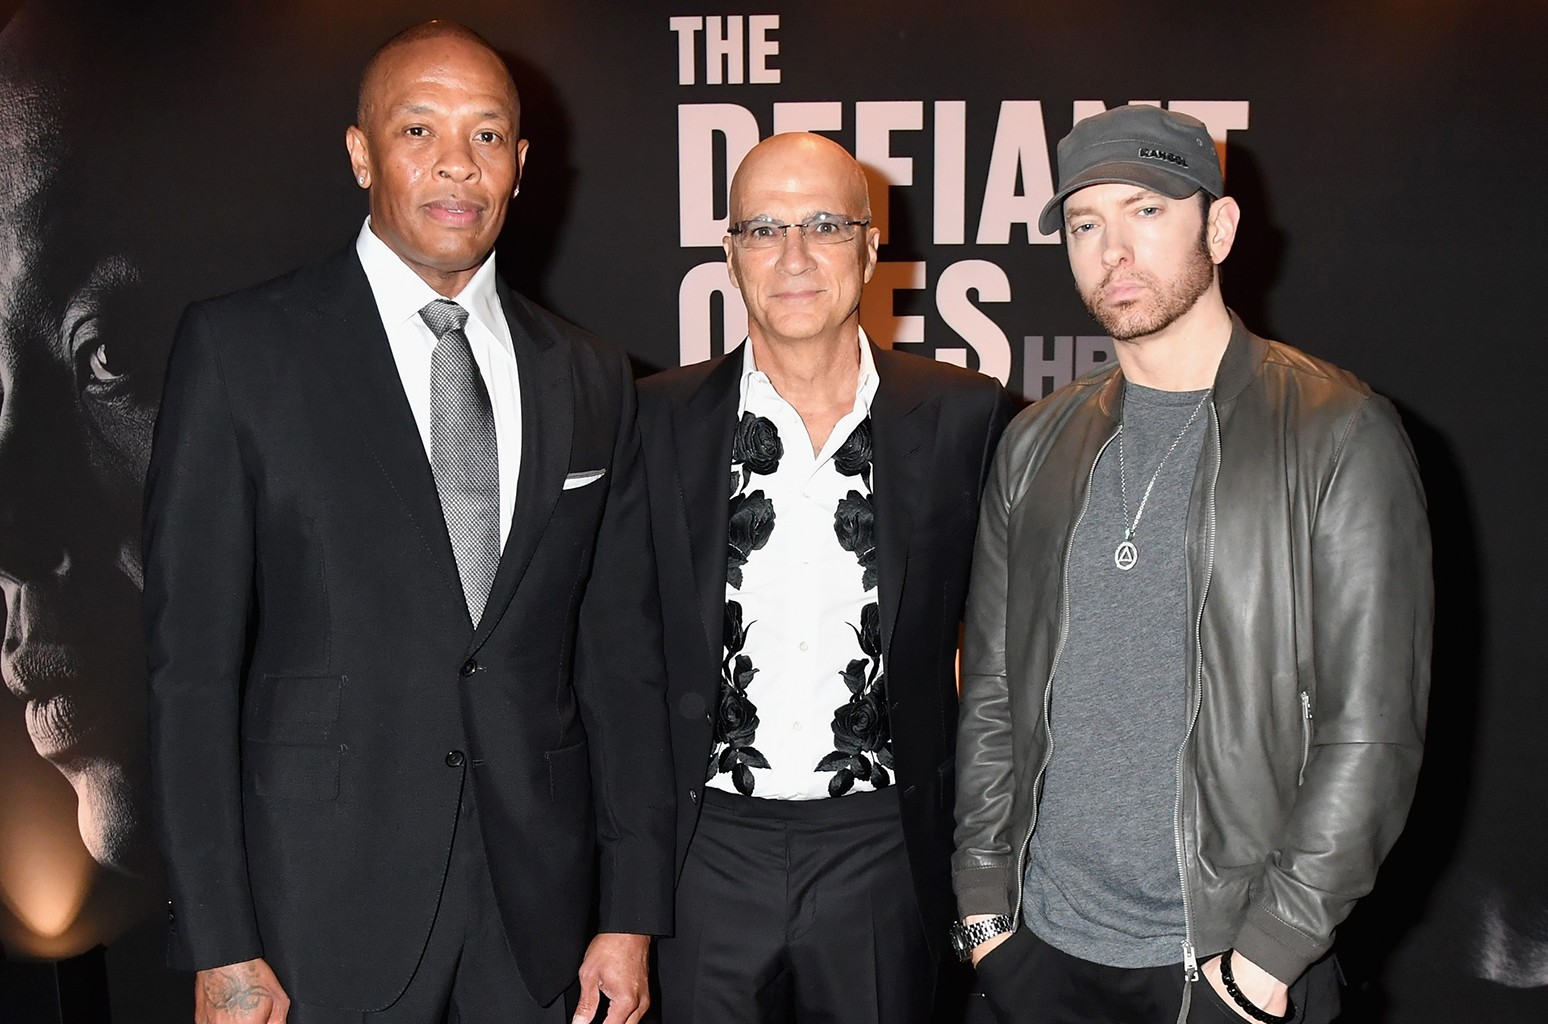 Dr. Dre, Jimmy Iovine and Eminem attend HBO's The Defiant Ones premiere at Paramount Studios on June 22, 2017 in Los Angeles.